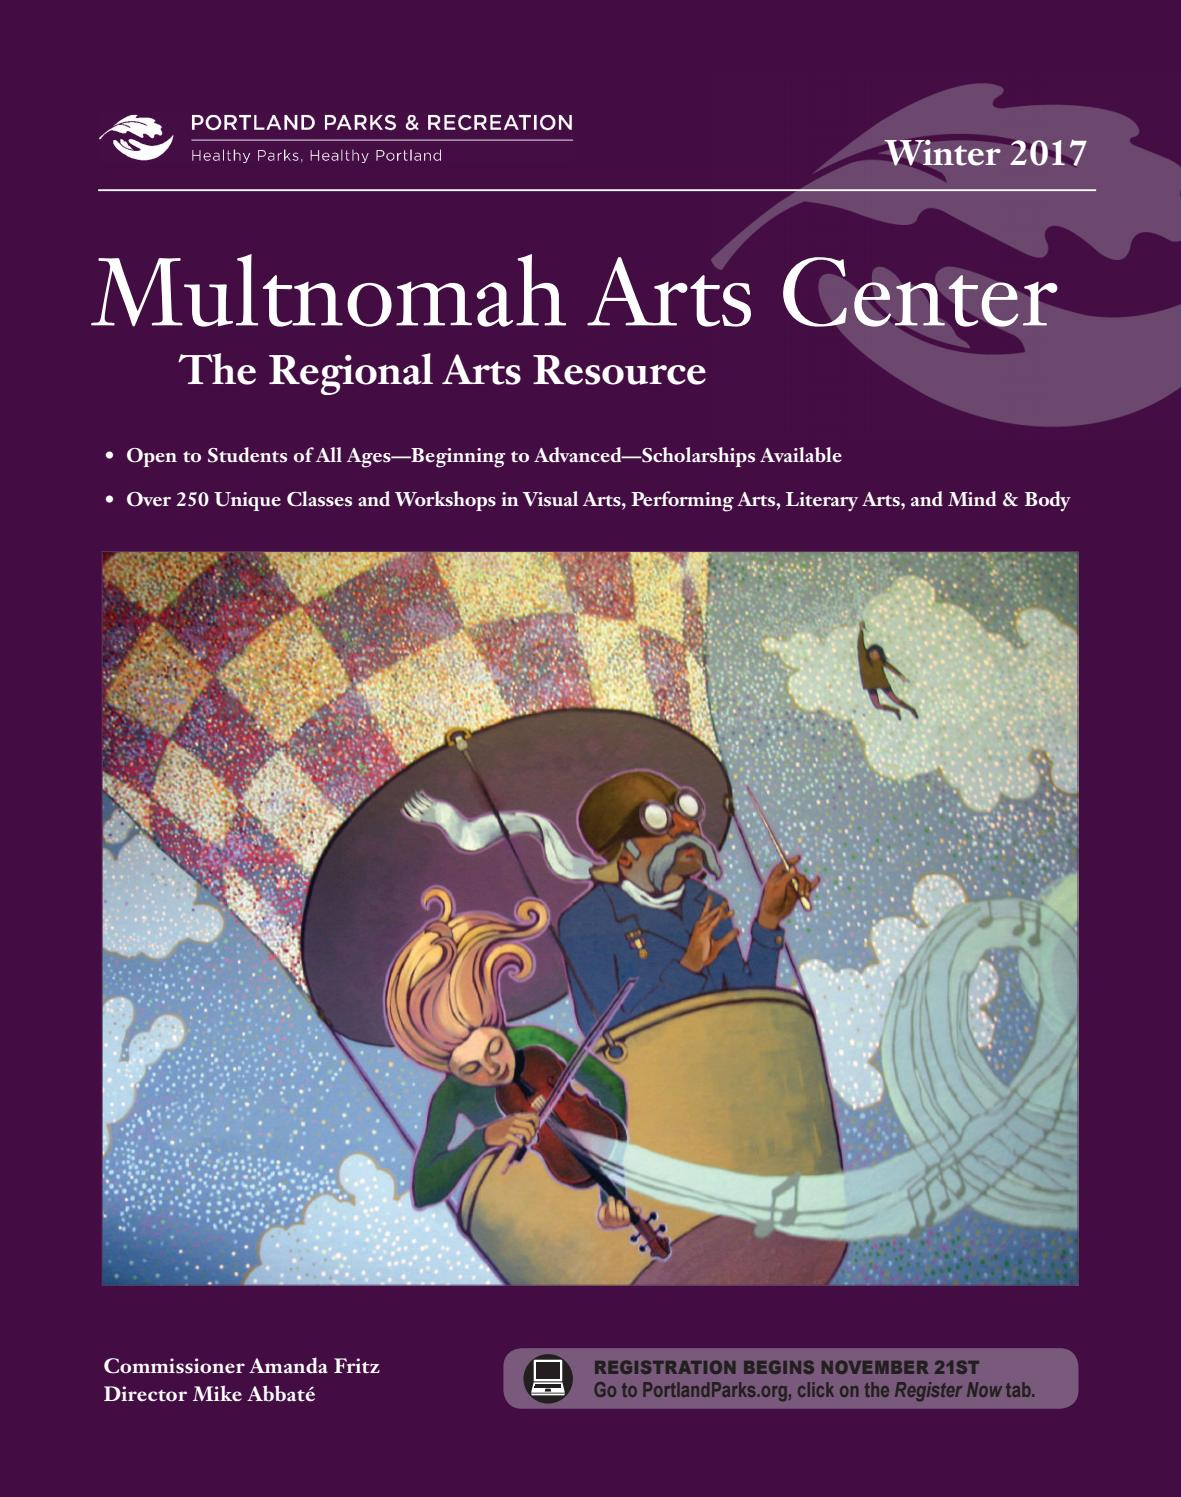 Multnomah Arts Center Winter 2017 By Portland Parks Recreation